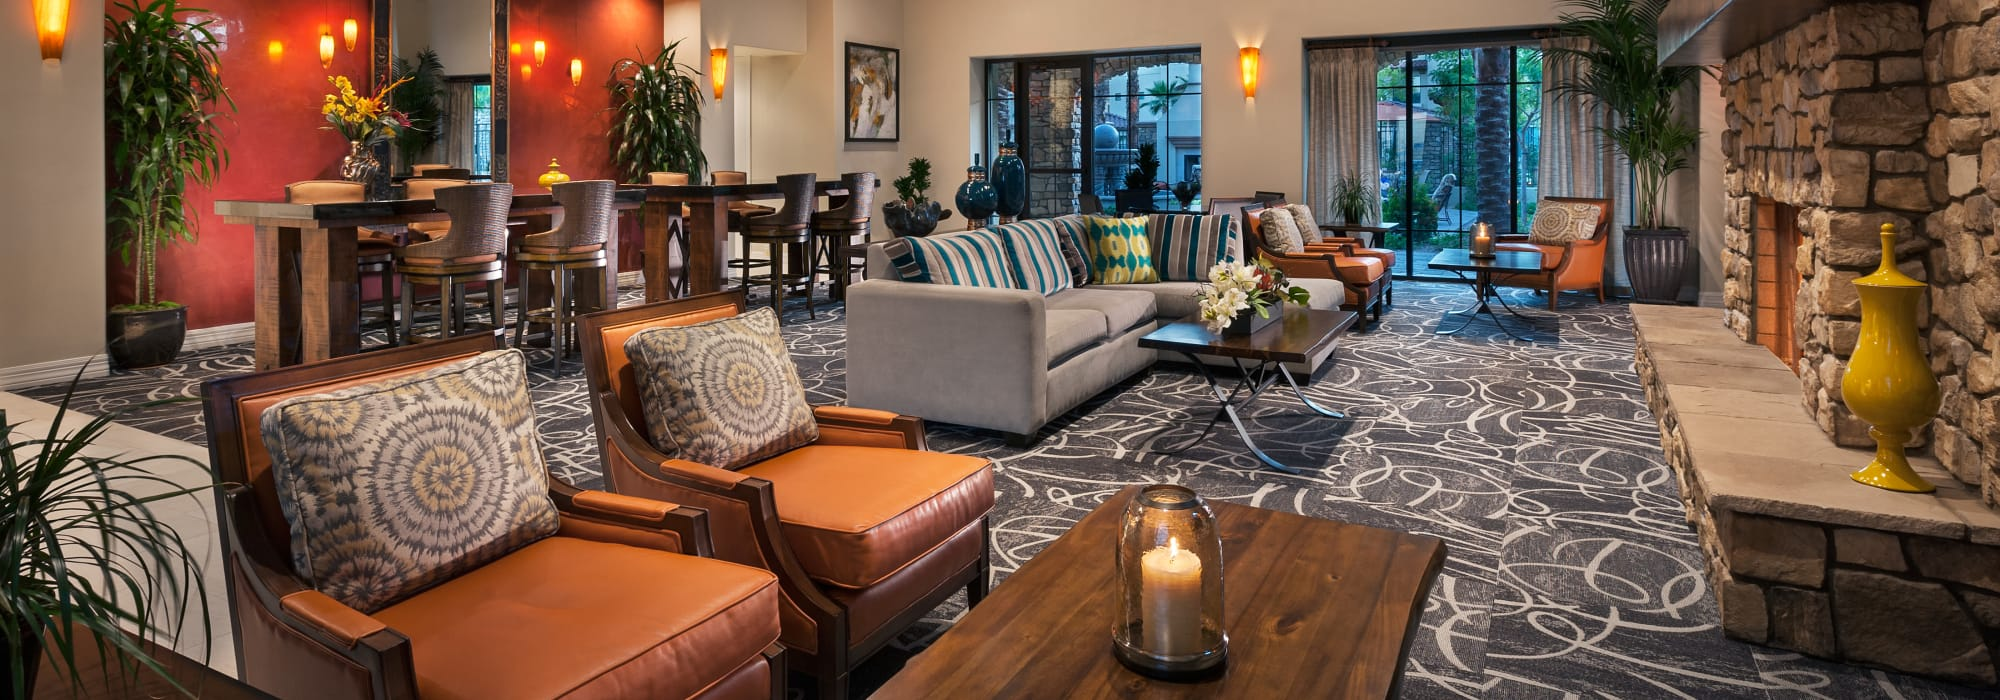 Spacious clubhouse to entertain friends and family at San Sonoma in Tempe, Arizona